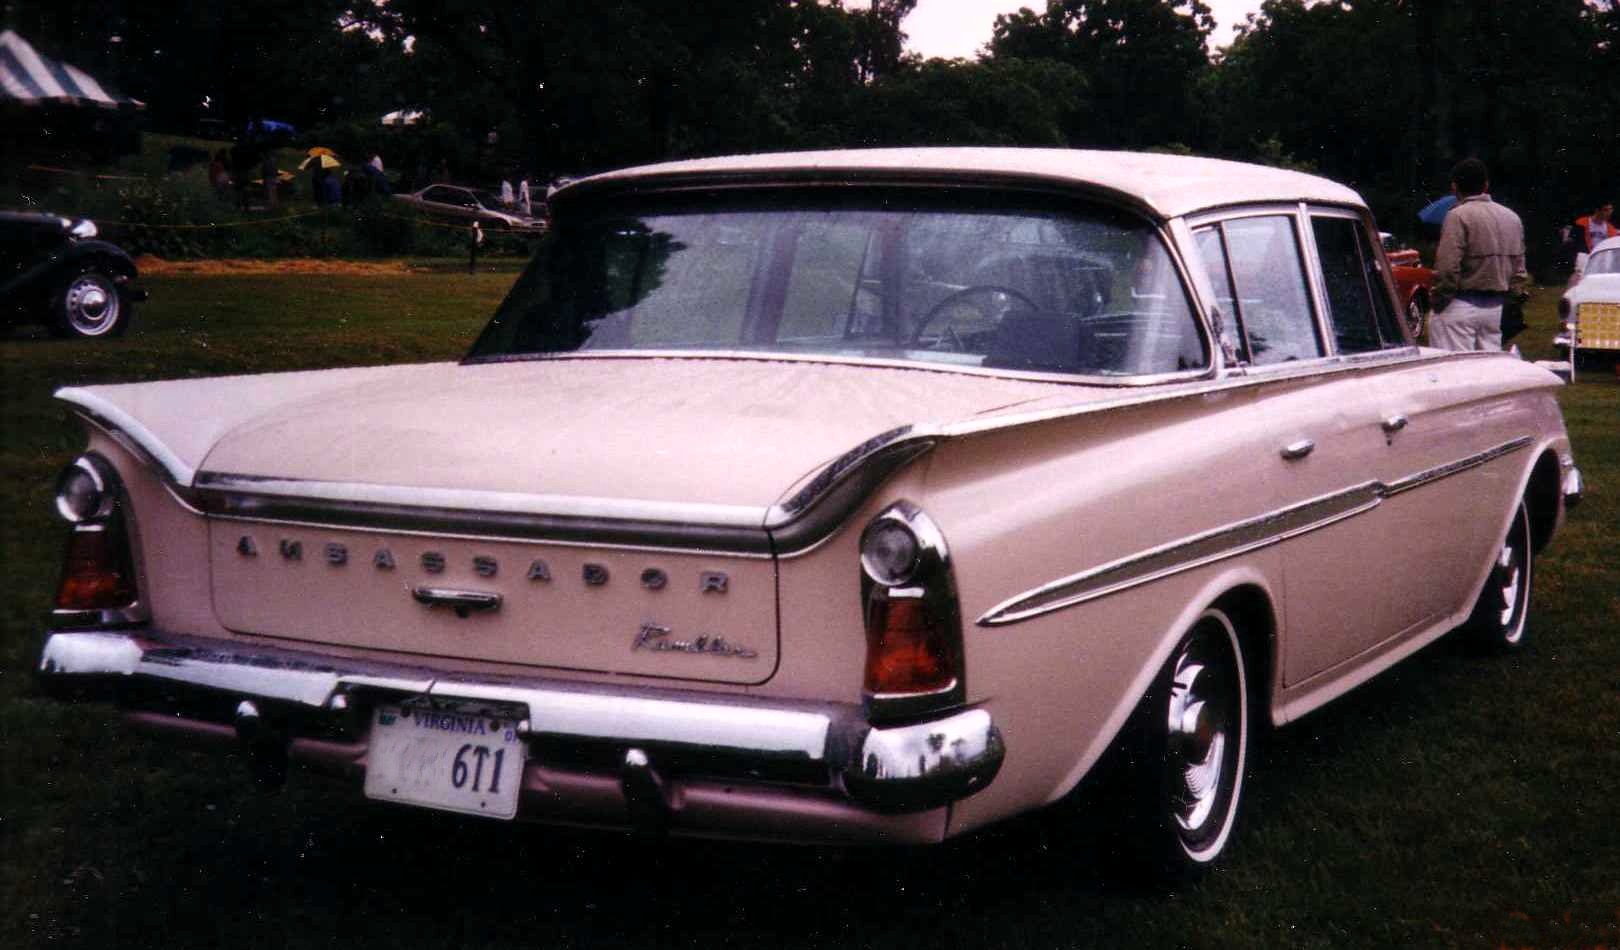 Amc rambler photo - 3